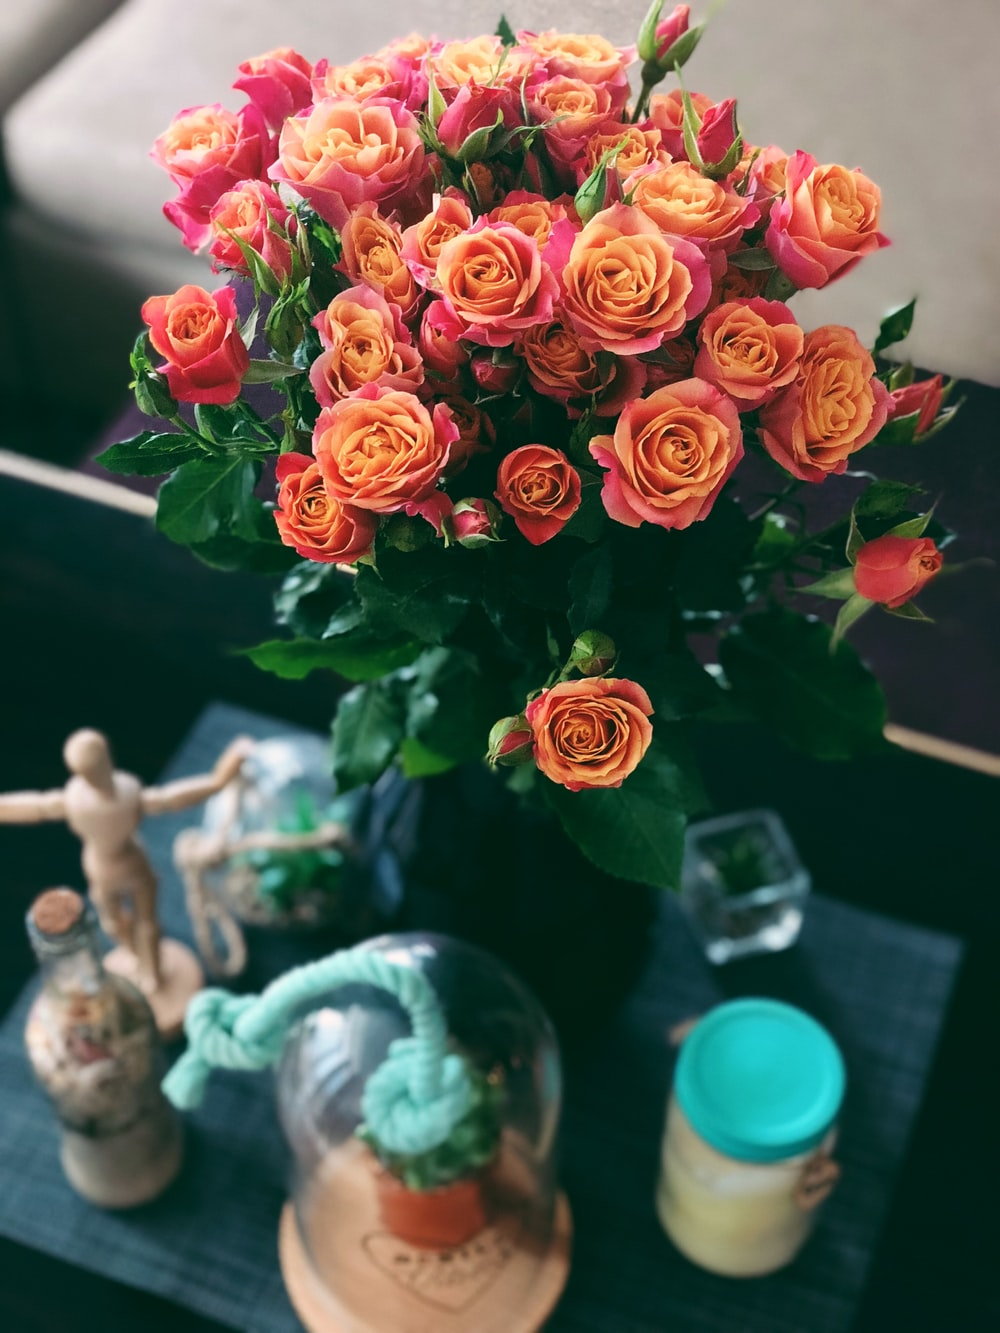 rose bouquet and clear glass jar